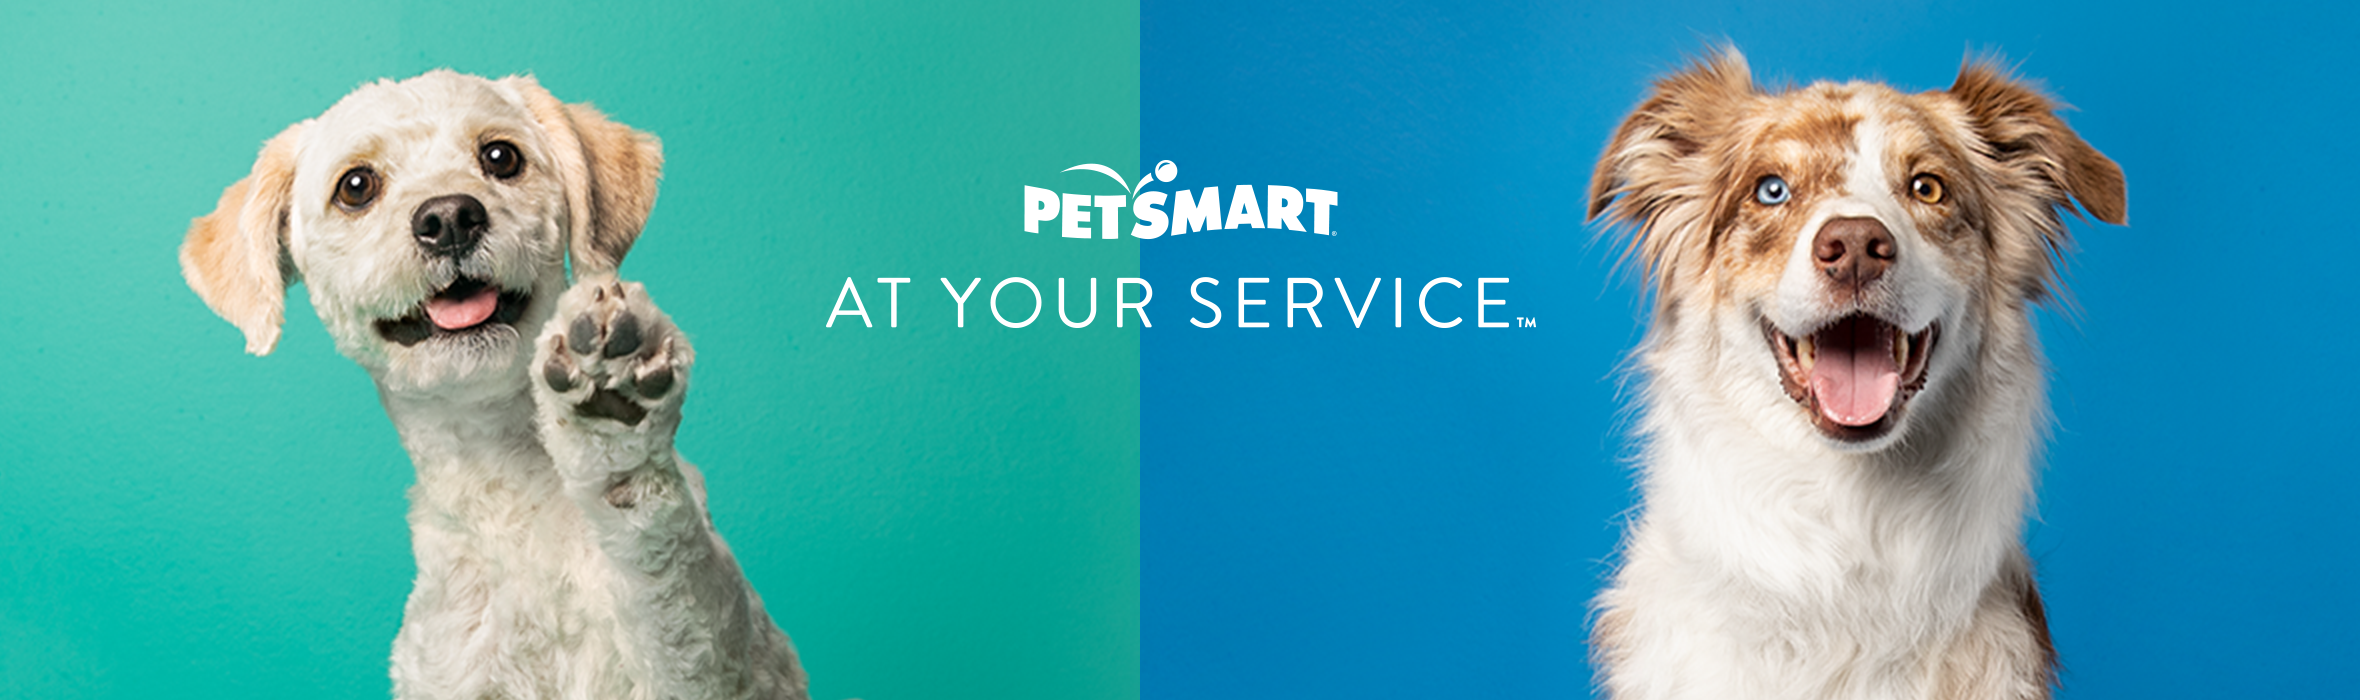 Pet Services for Dogs & Cats: Grooming, Boarding & more